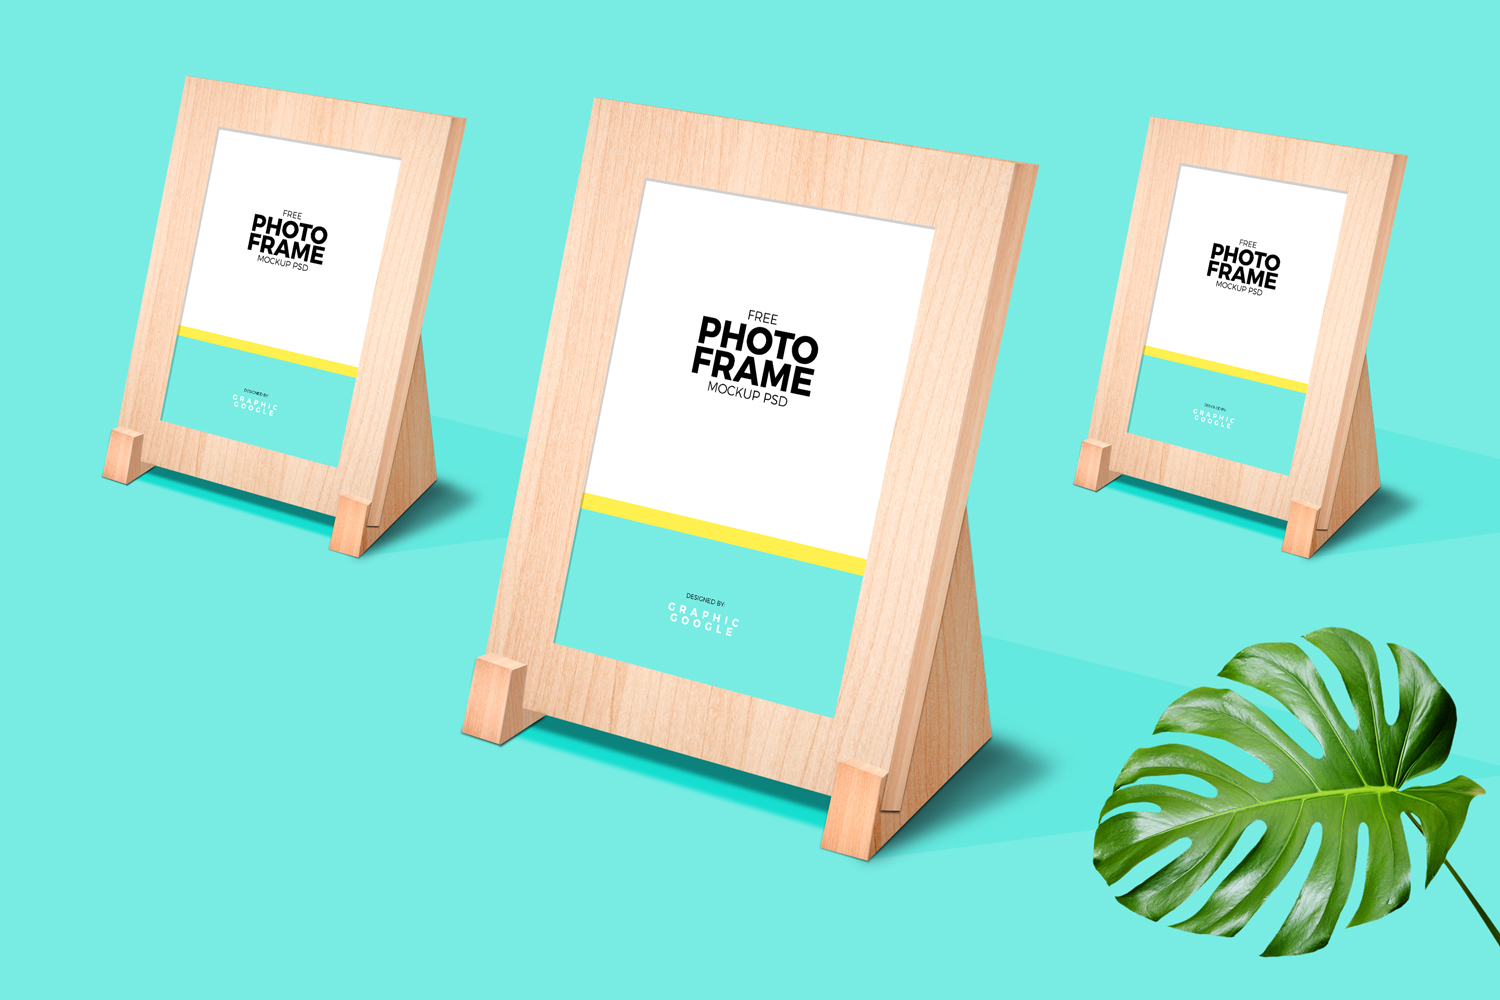 Free-Photo-Frame-Stand-Mockup-PSD